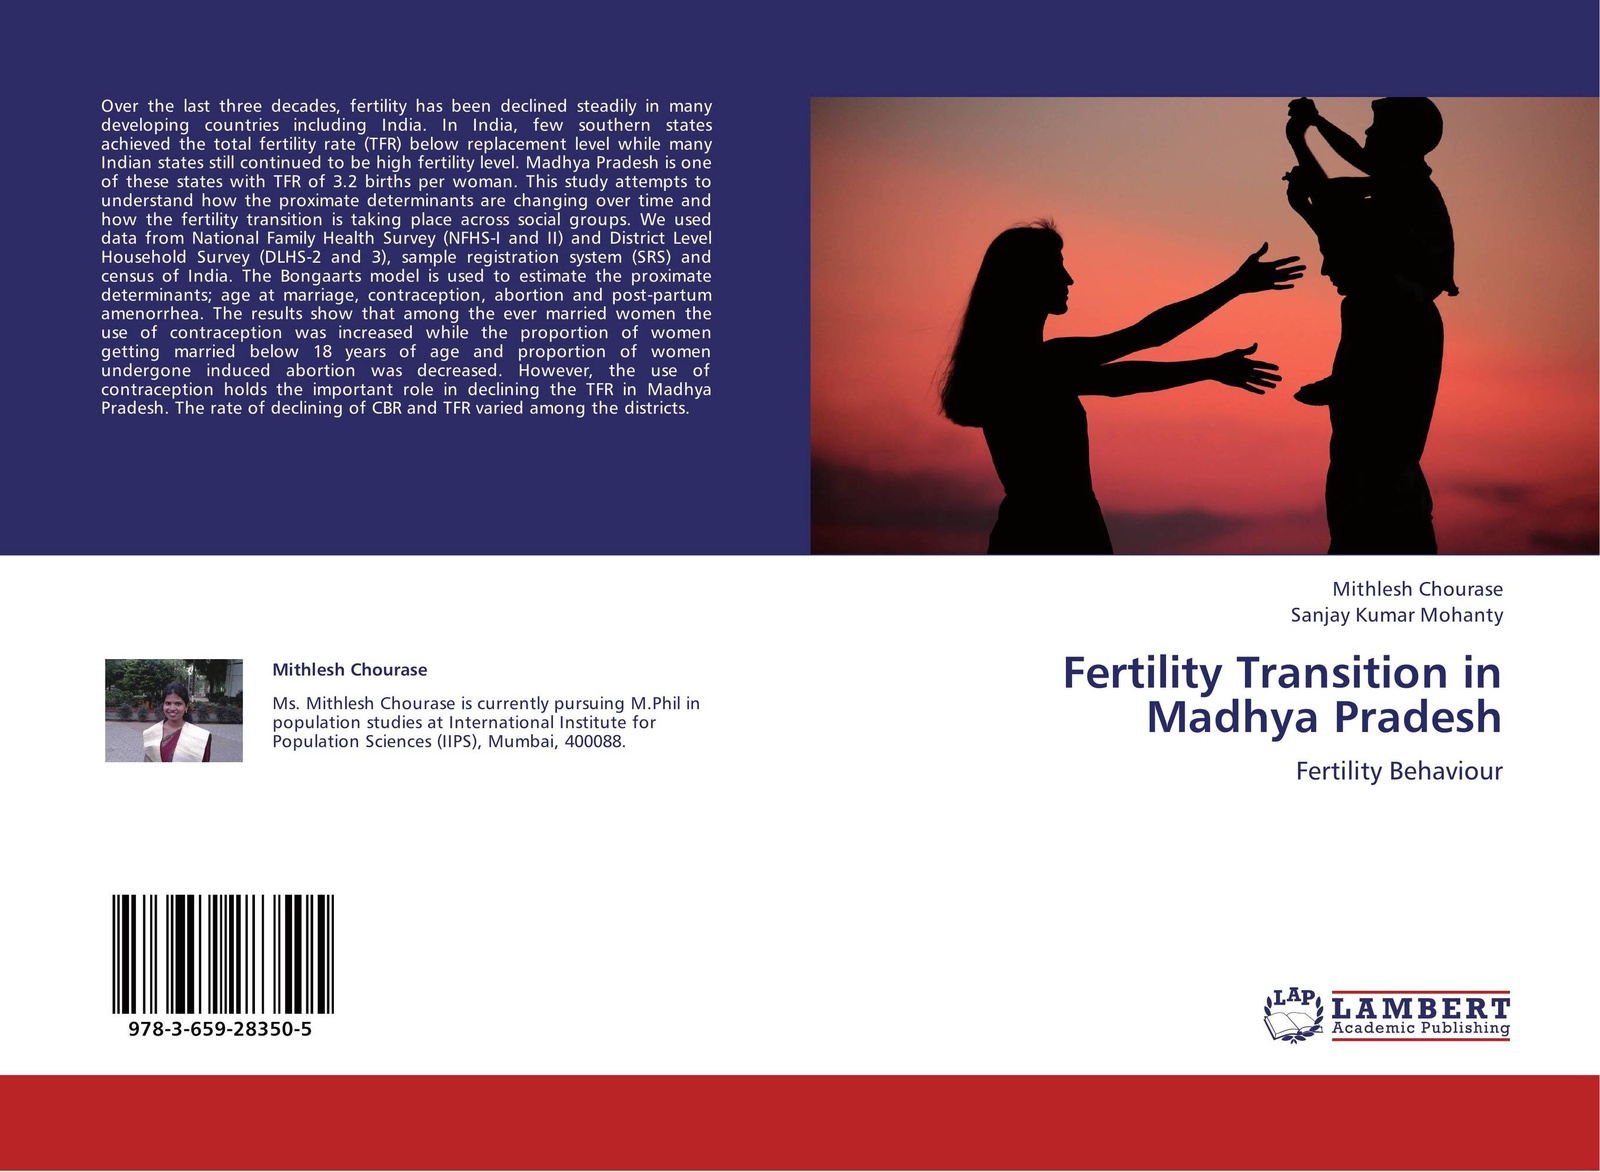 где купить Mithlesh Chourase and Sanjay Kumar Mohanty Fertility Transition in Madhya Pradesh недорого с доставкой